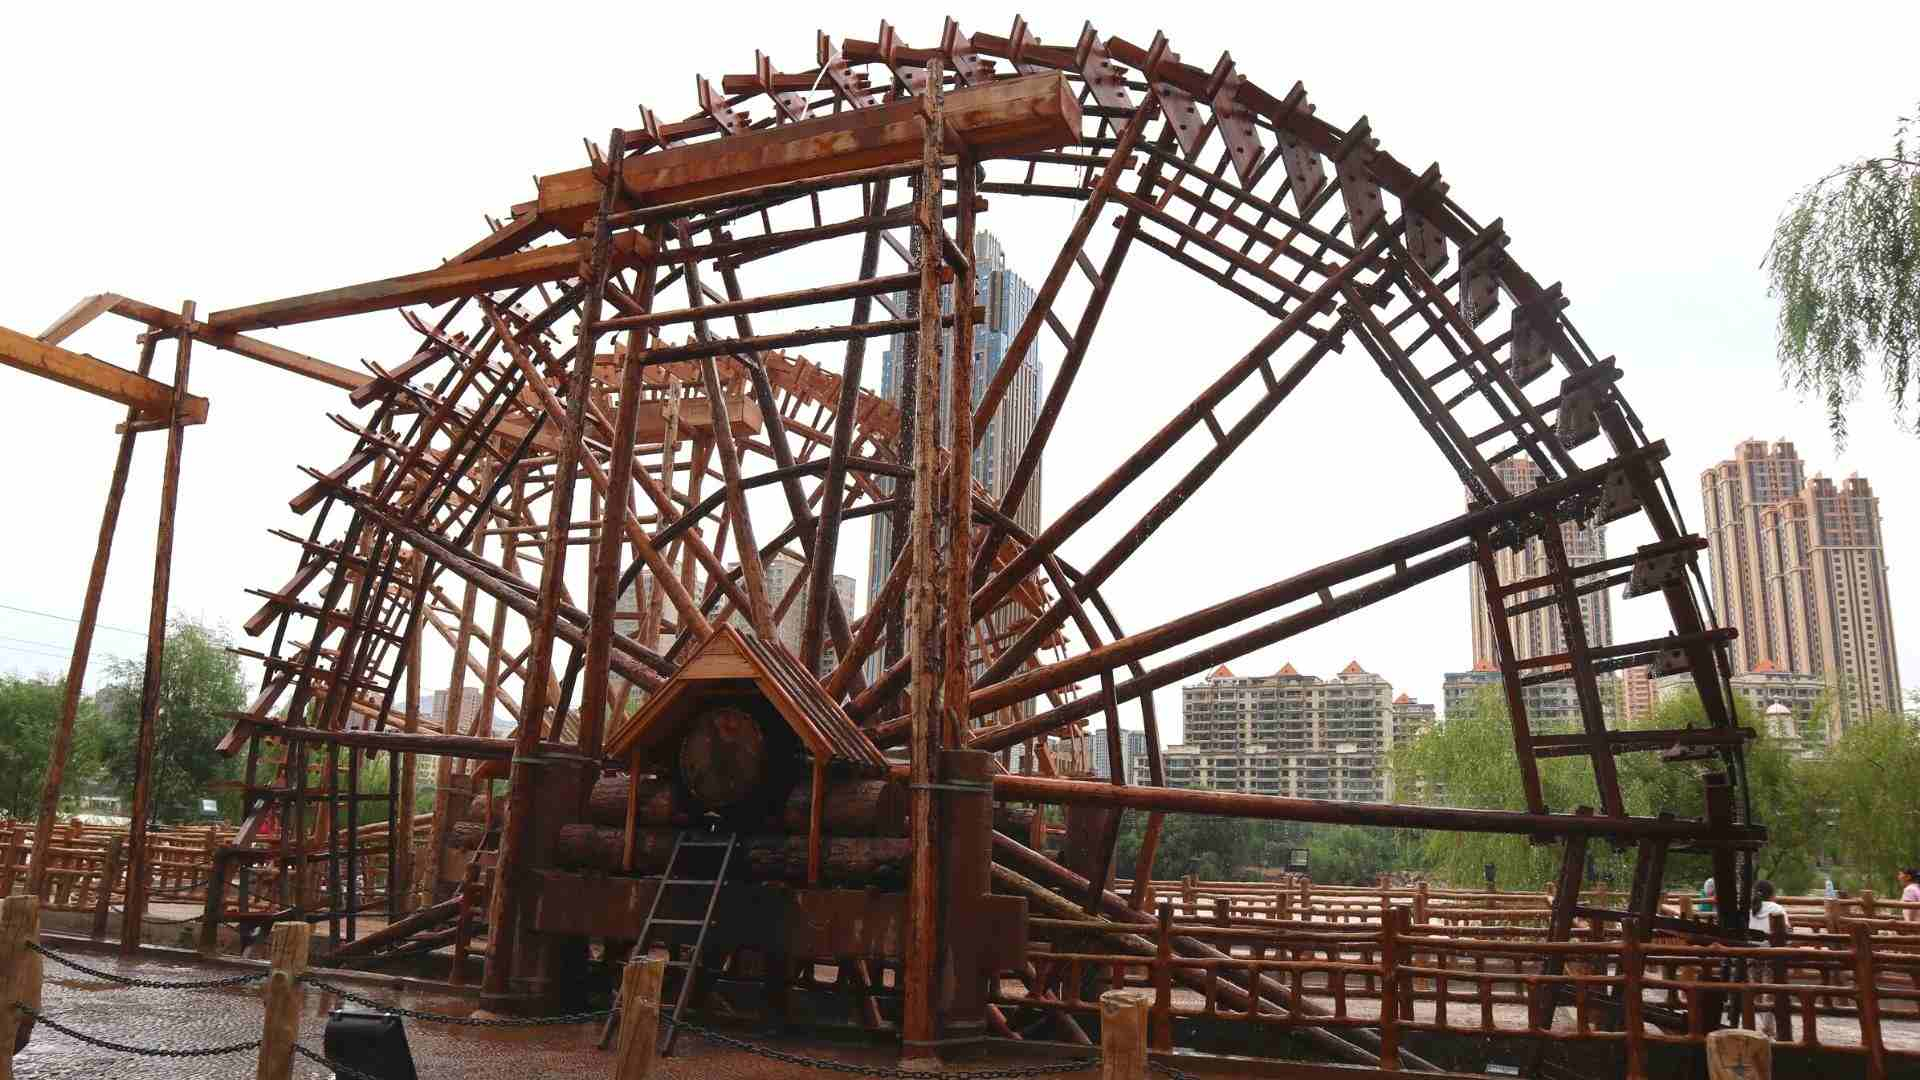 Water wheels by the Yellow River bank